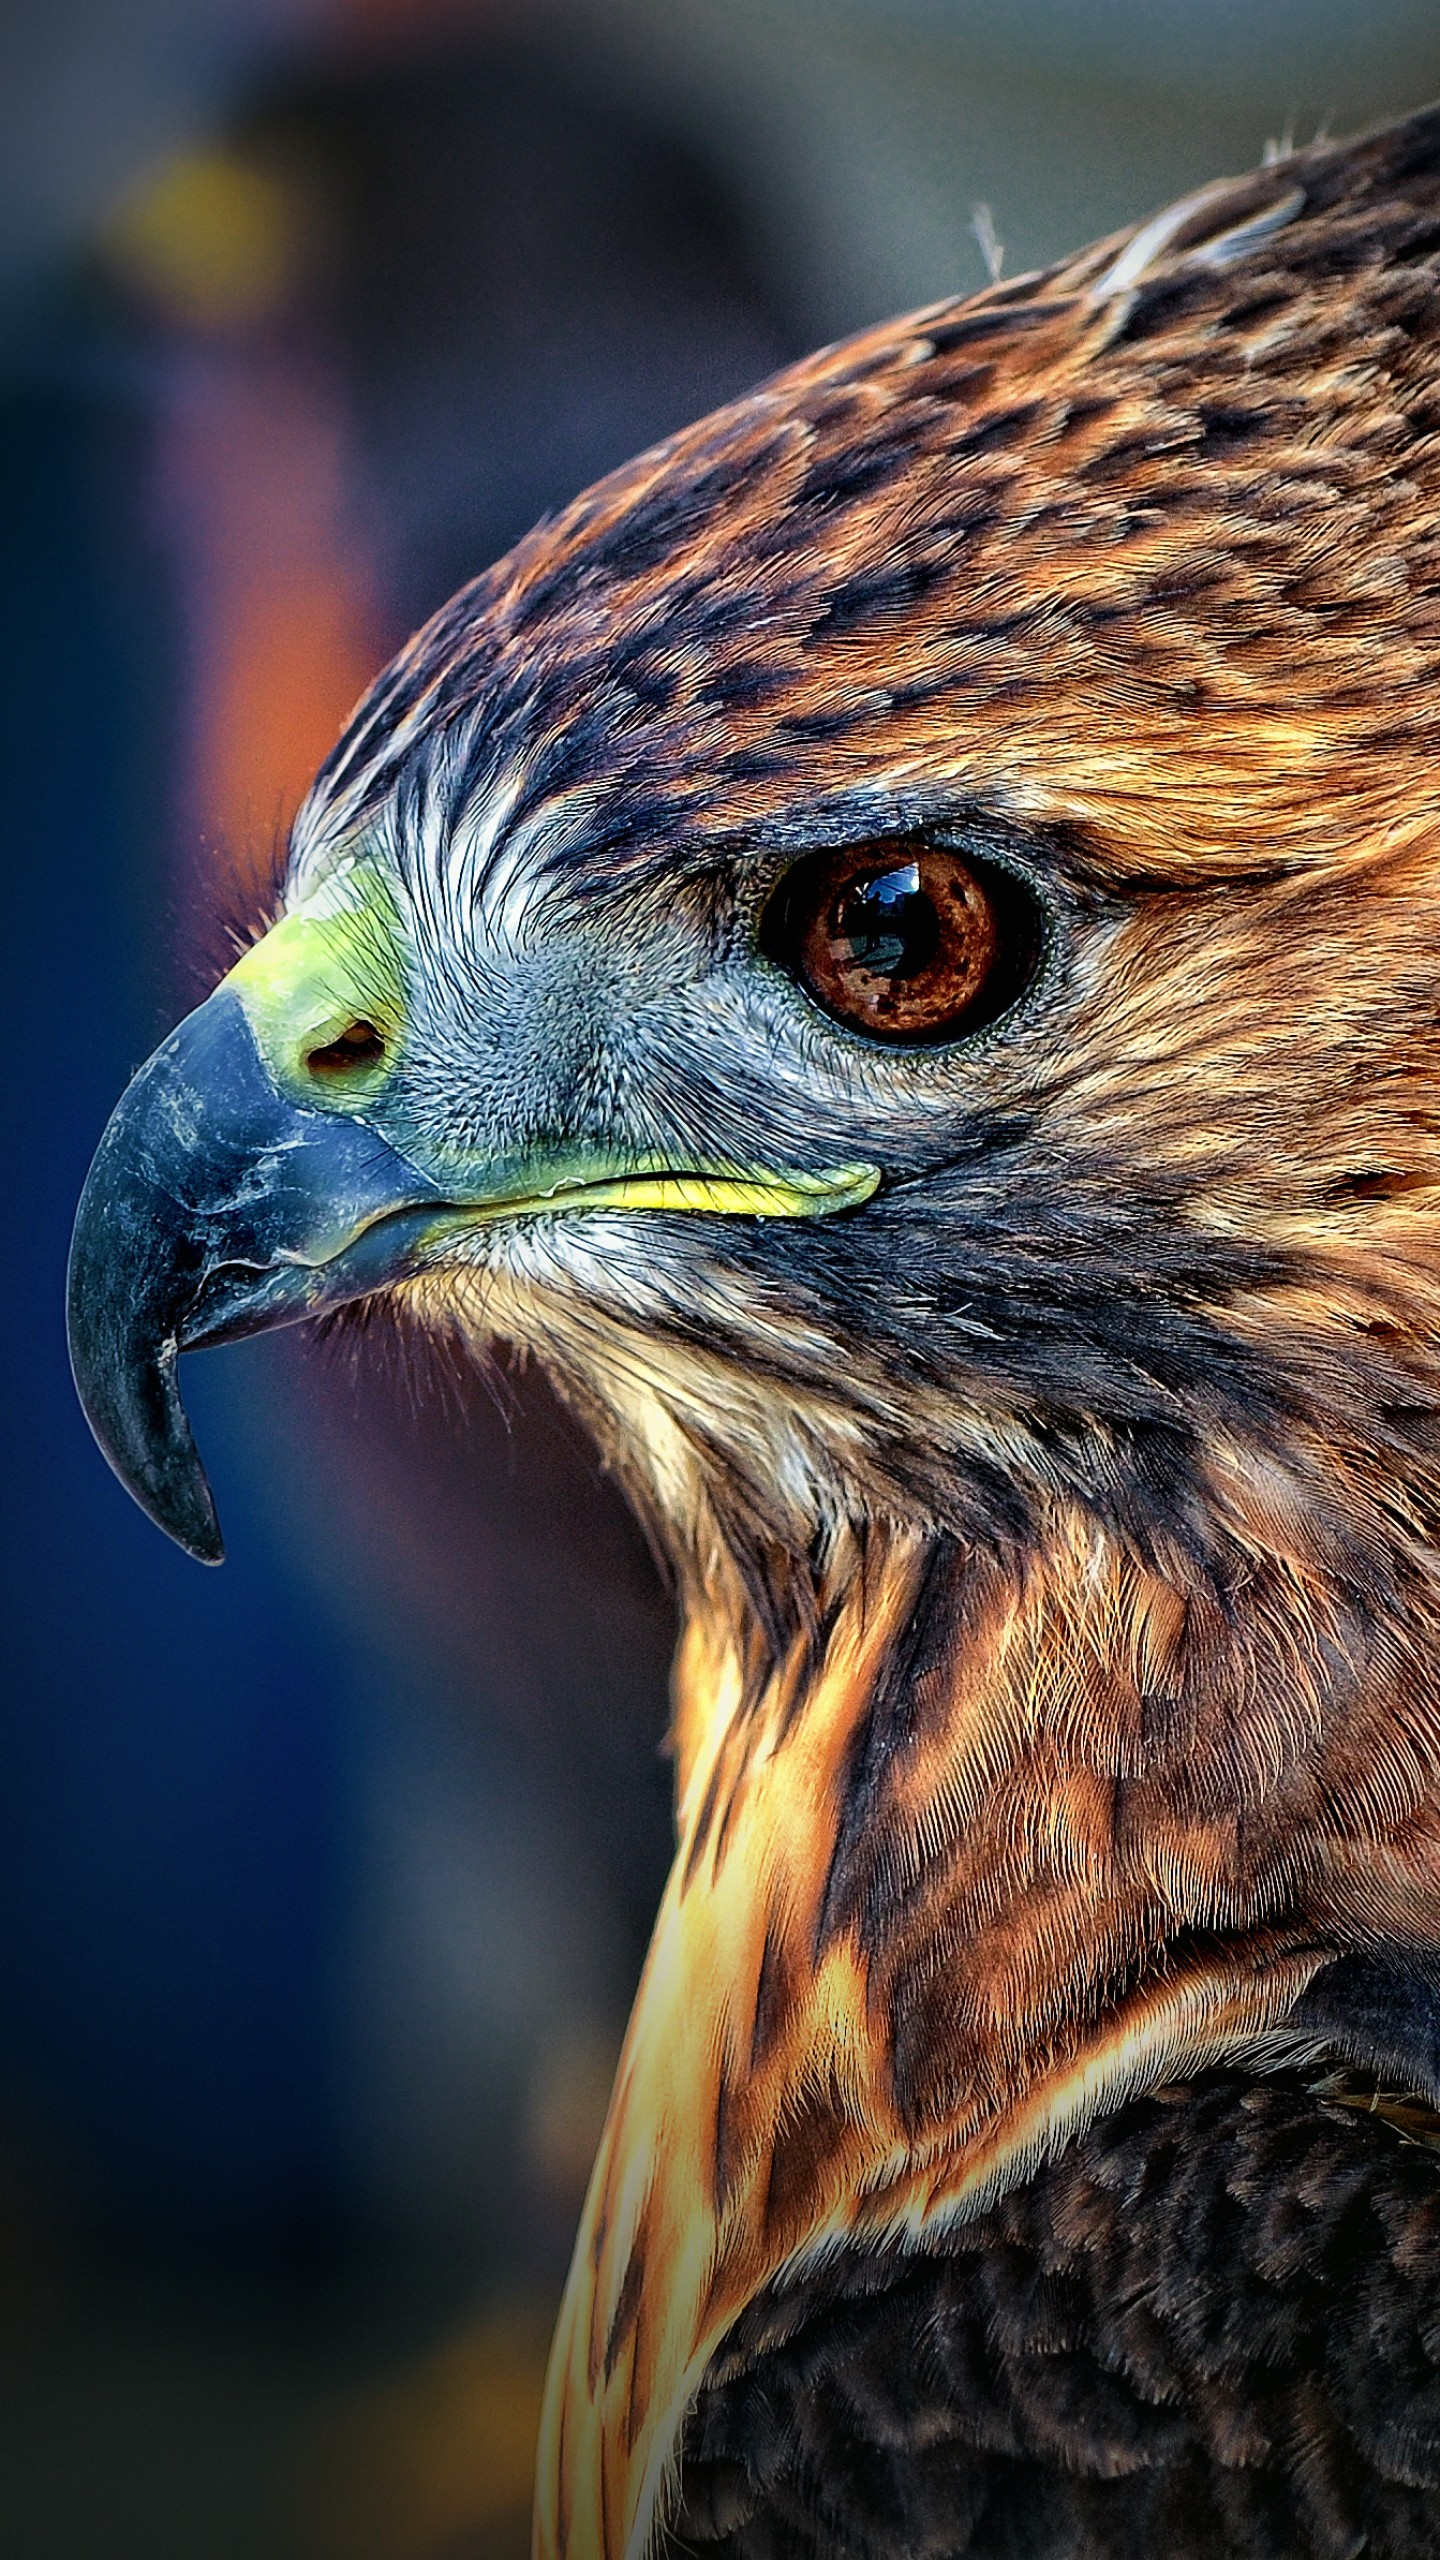 Wallpaper Eagle, Blur, Cute Animals, Animals #4485